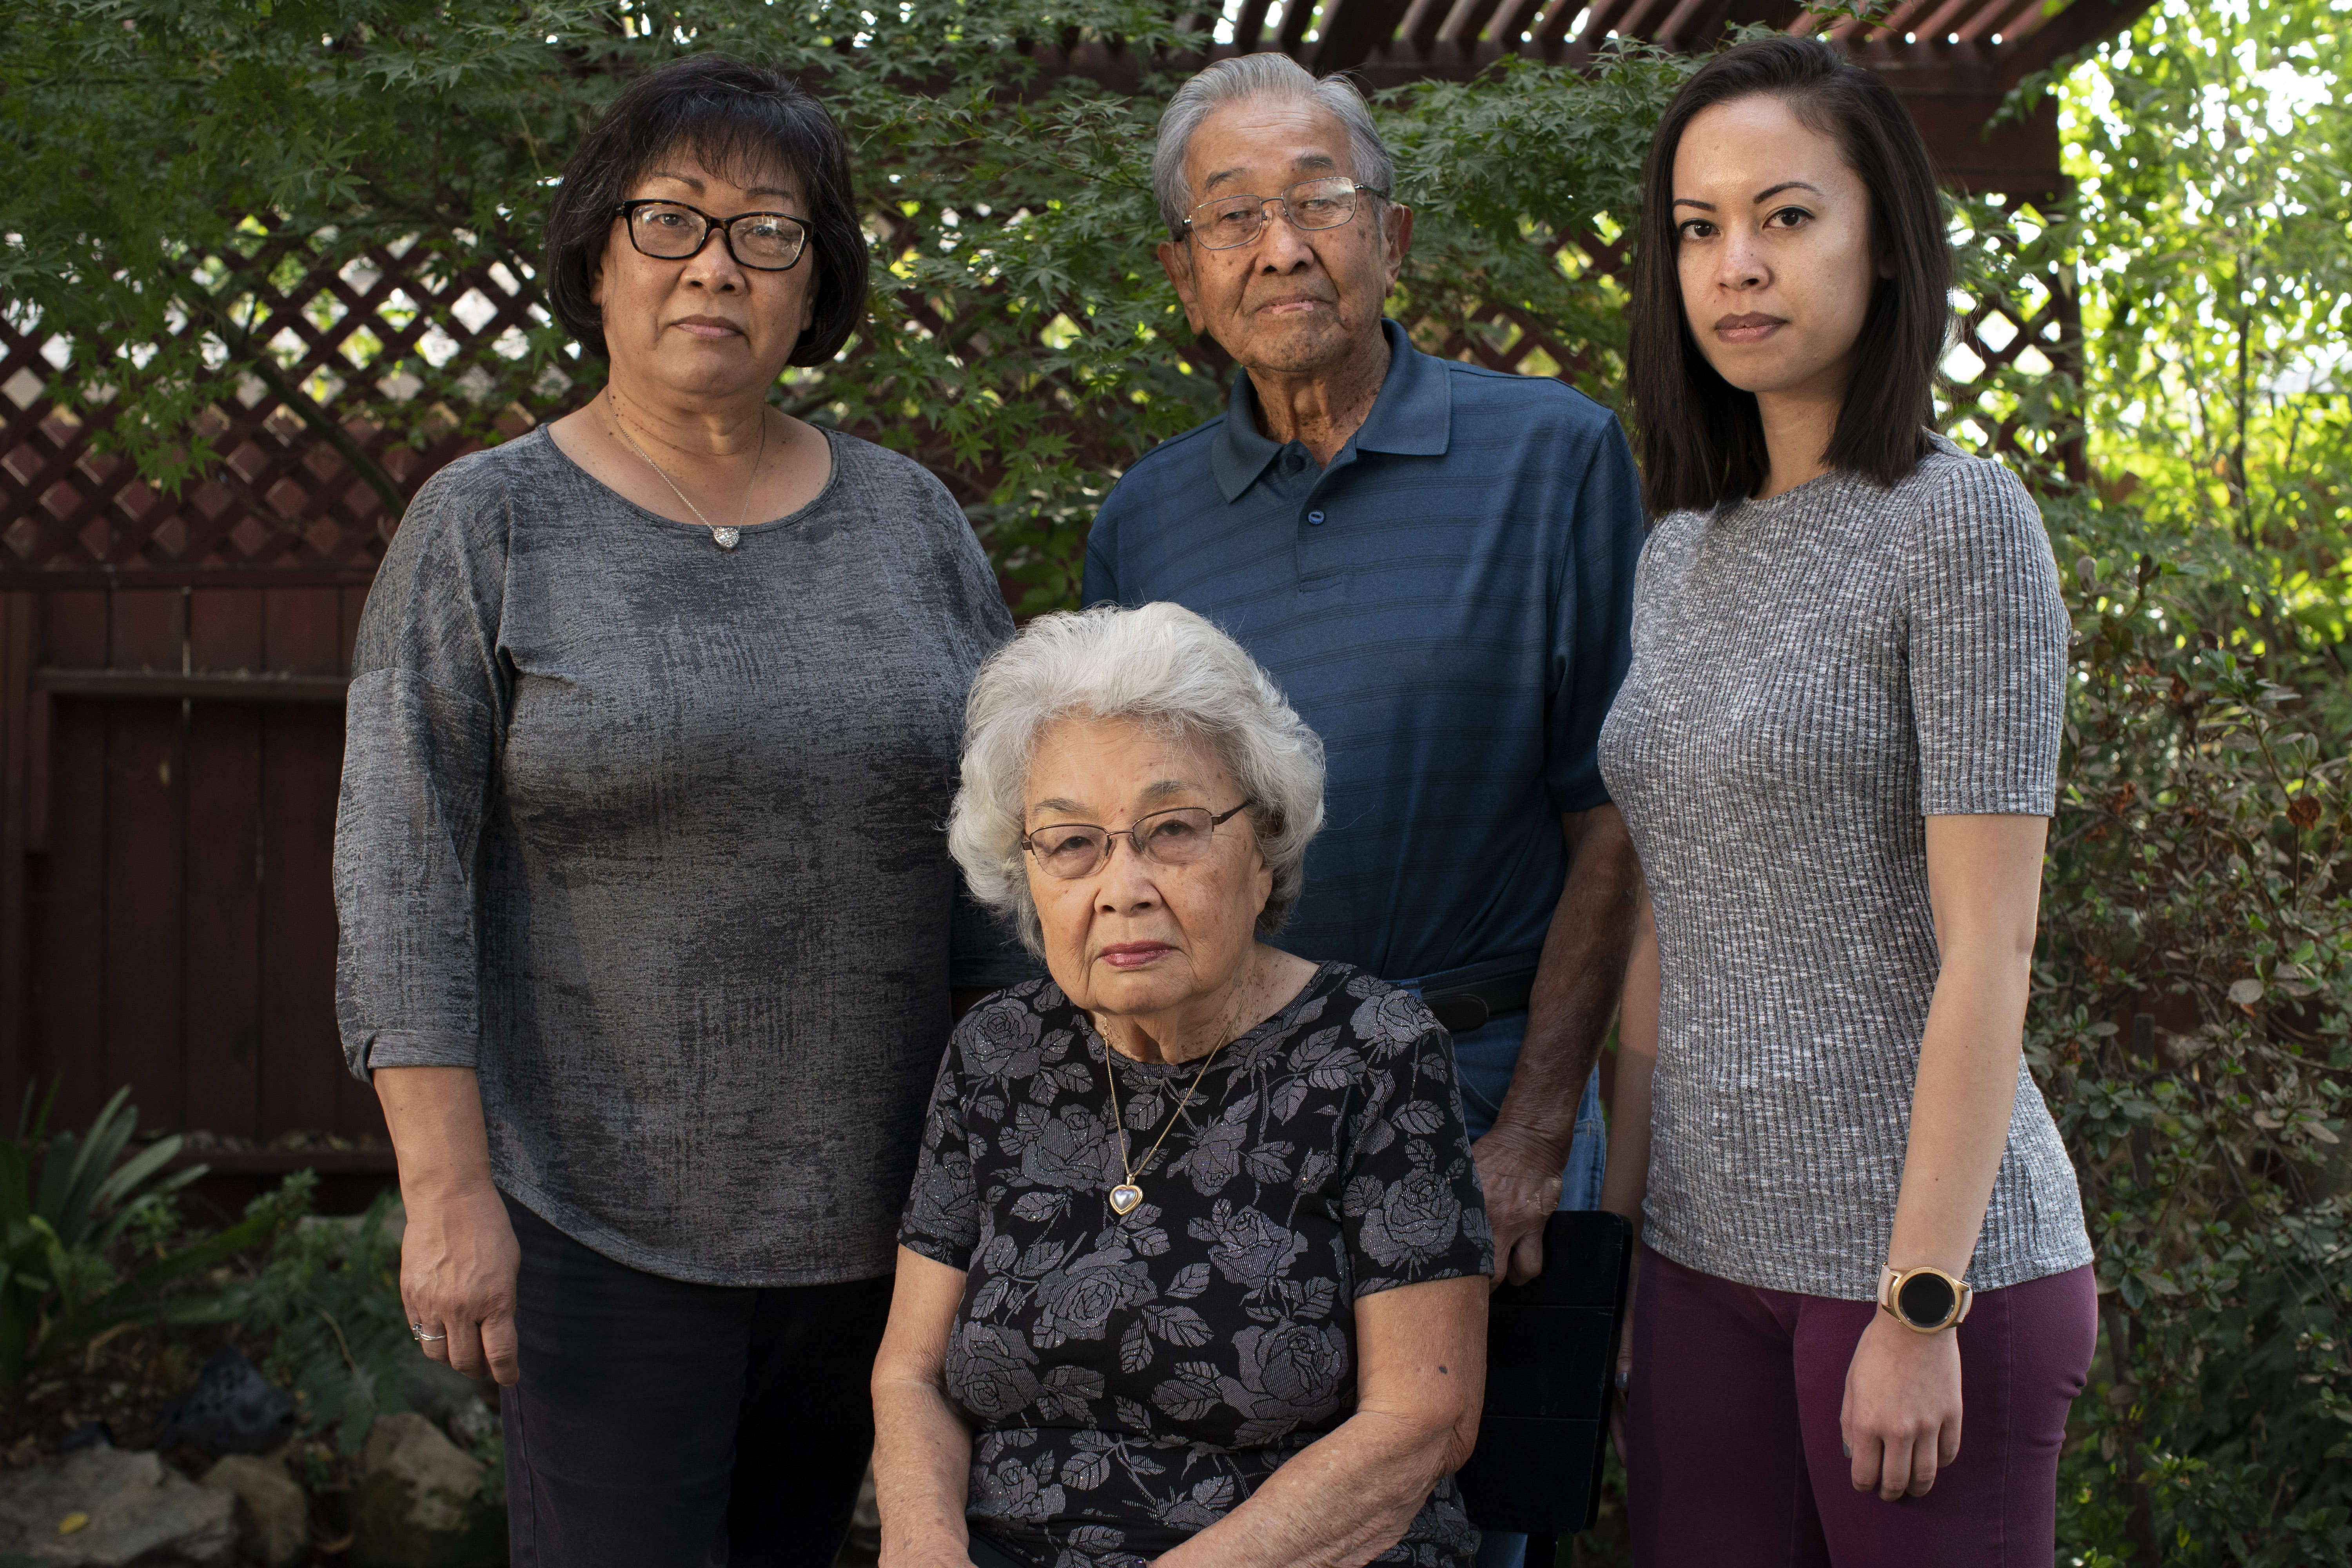 Ginny Yamamoto stands with her parents Mitsuo Yamamoto and Jayne Yamamoto, and along with her daughter Robyn Syphax within their Japanese garden in Sacramento, California. MUST CREDIT: Washington Post photo by Melina Mara.